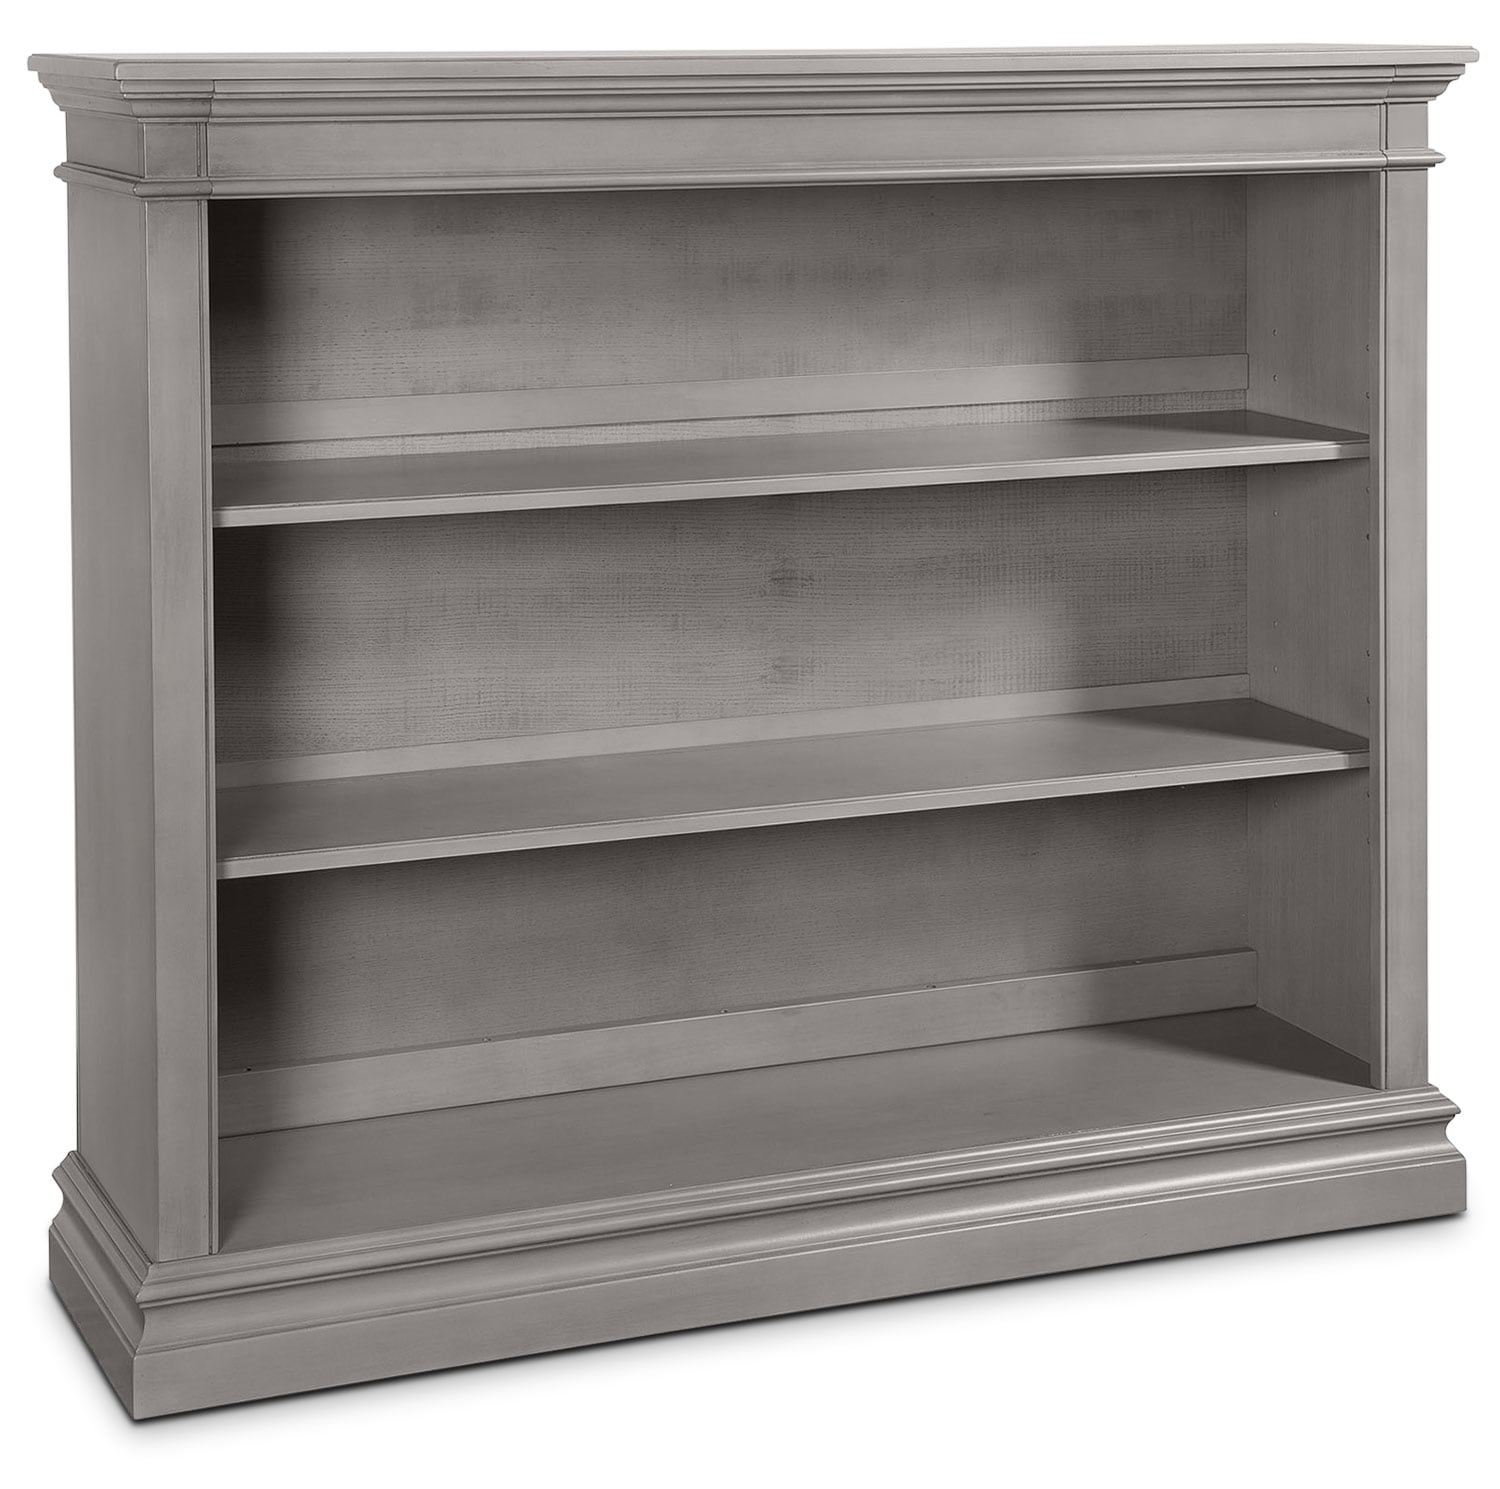 Kids Furniture - Cameron Hutch Bookcase - Cloud